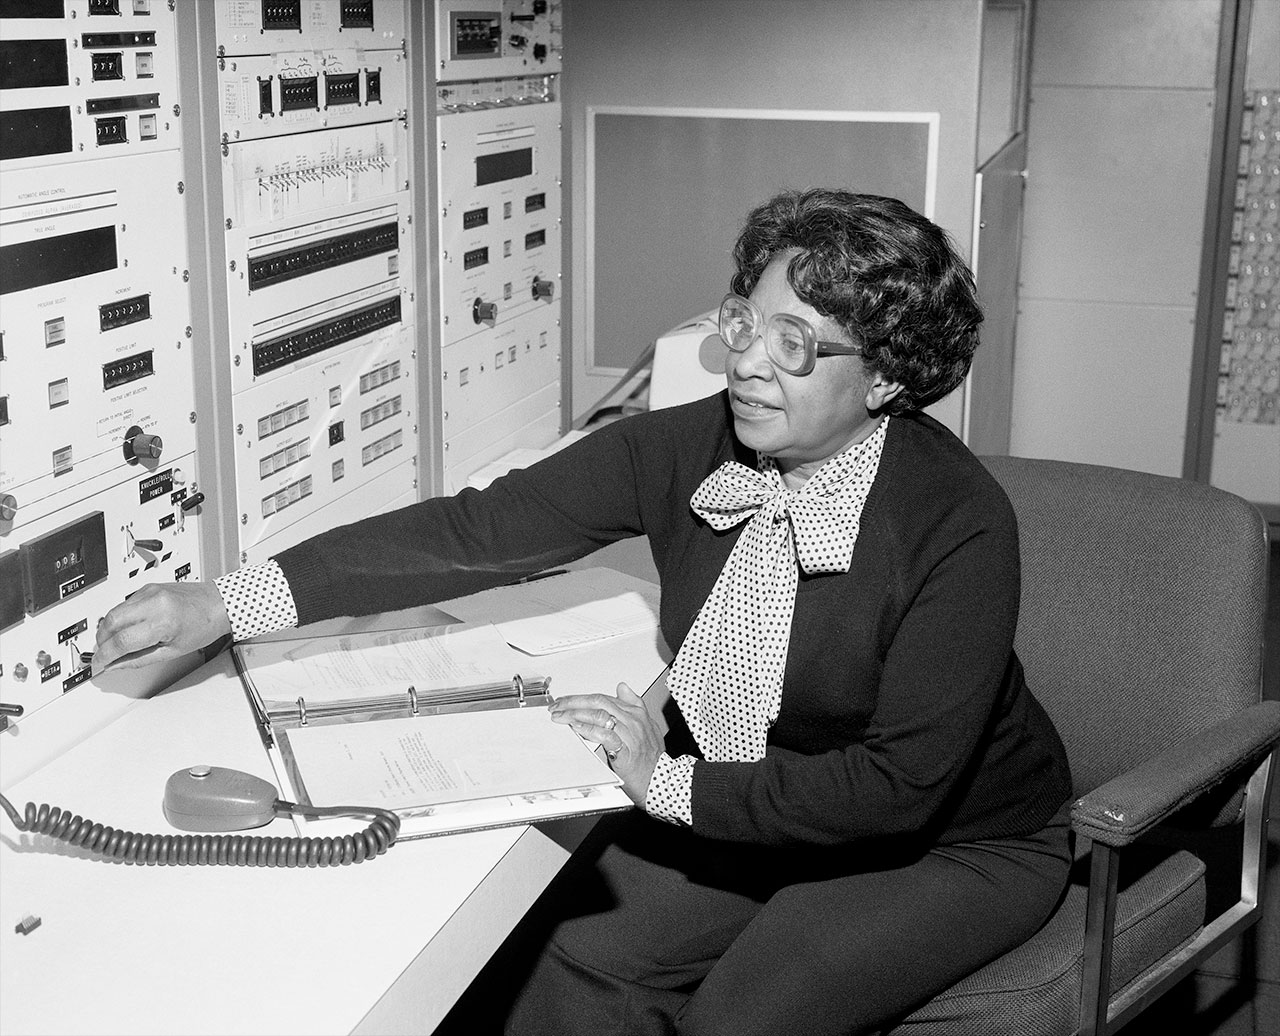 Mary W. Jackson at NASA's Langley Research Center in Hampton, Virginia, where she began work in 1951 and became the agency's first African American female engineer in 1958.